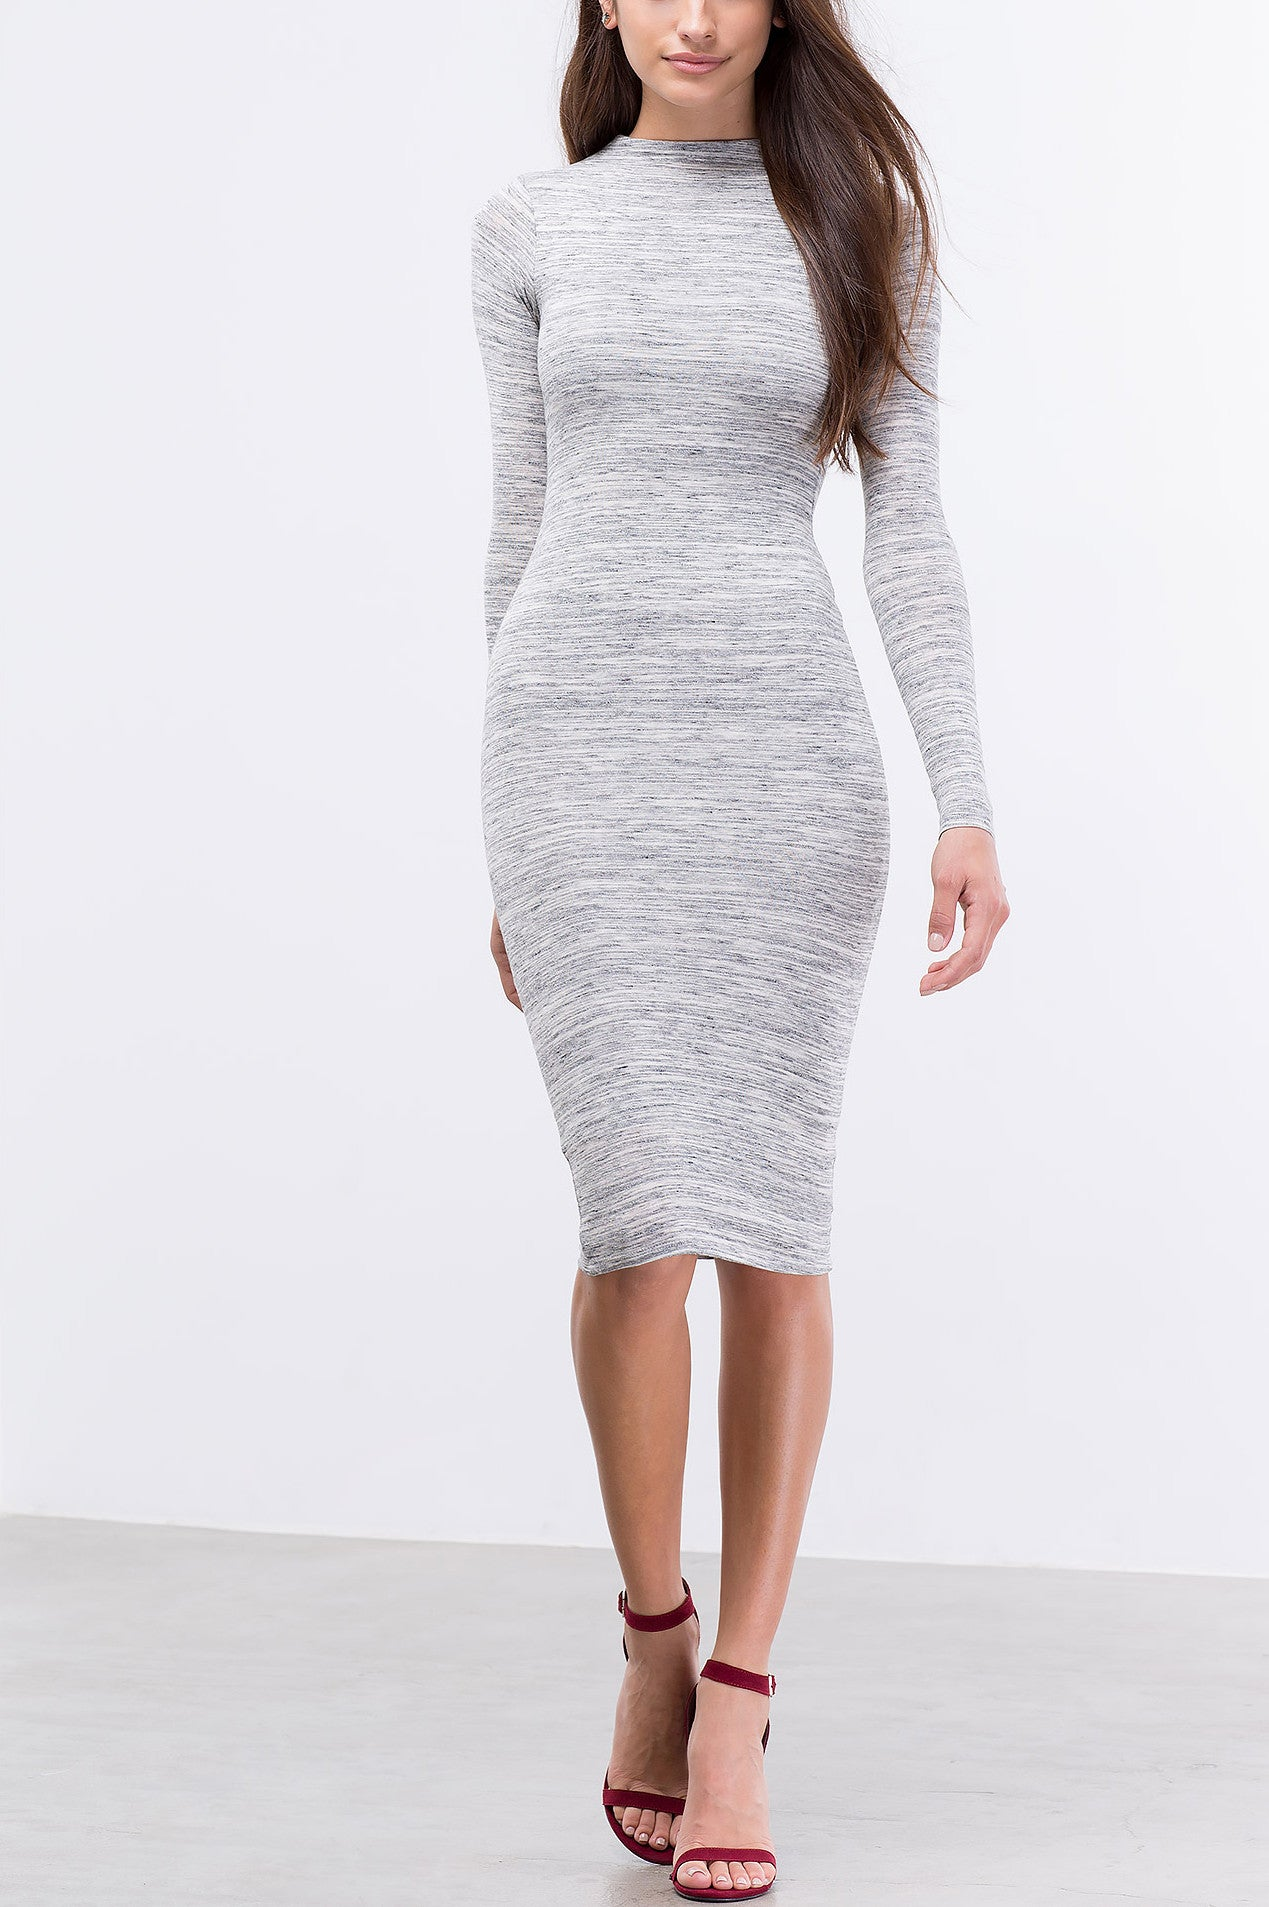 Paulina-long-sleeve-bodycon-midi-dress-basic-jersey-rachel-pally-clover-canyon-finders-keepers-keepsake-stone-cold-fox-Revolve-Clothing-blue-life-love-lemons-jarlo-london-show-me-your-mumu-jetset-diaries-Free-People-Shopbop-Topshop-Zara-1.jpg